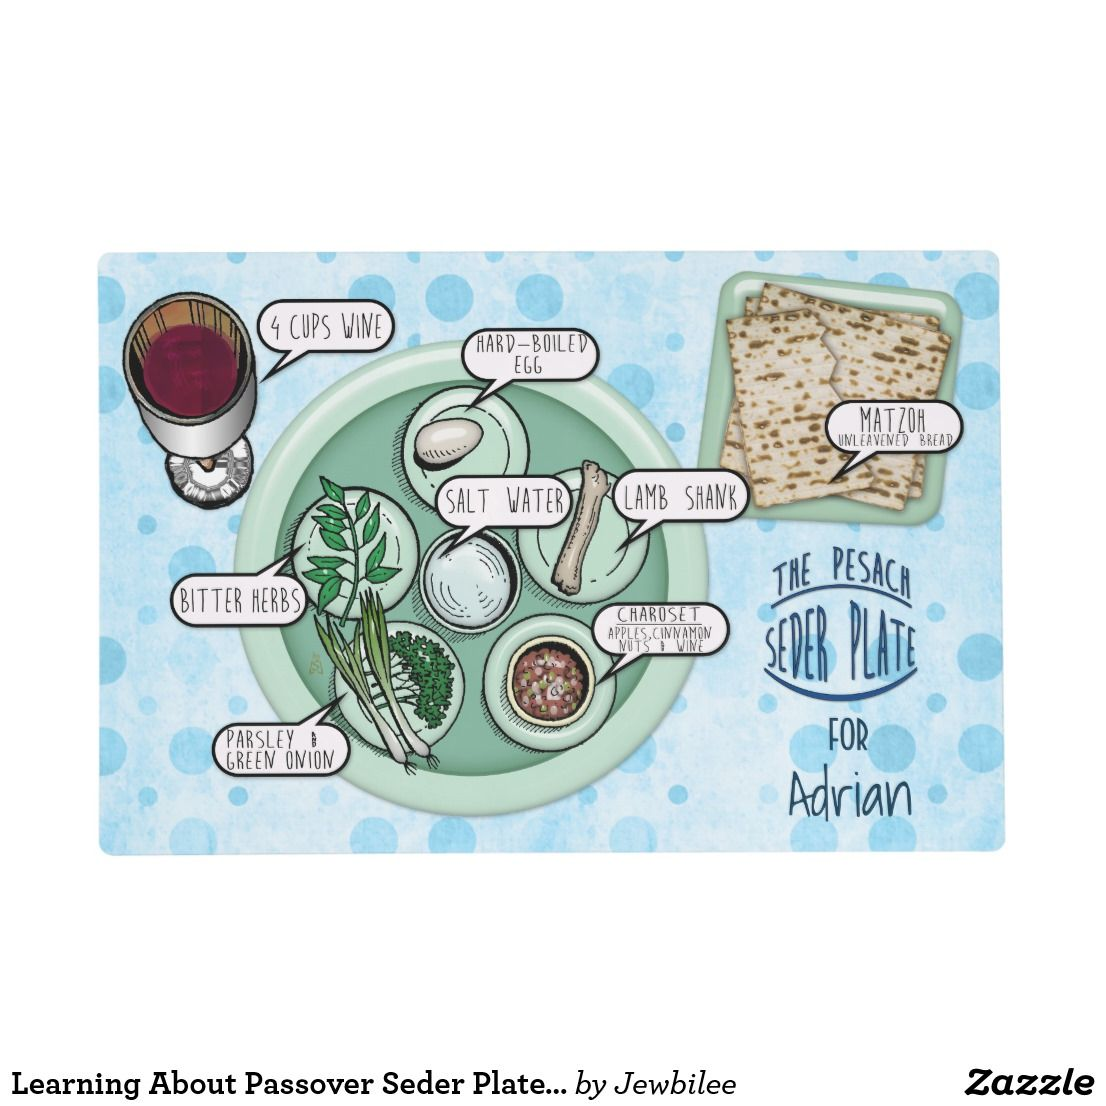 Learning About Passover Seder Plate Personalized Placemat Zazzle Com Passover Seder Plate Seder Plate Passover Seder [ 1106 x 1106 Pixel ]